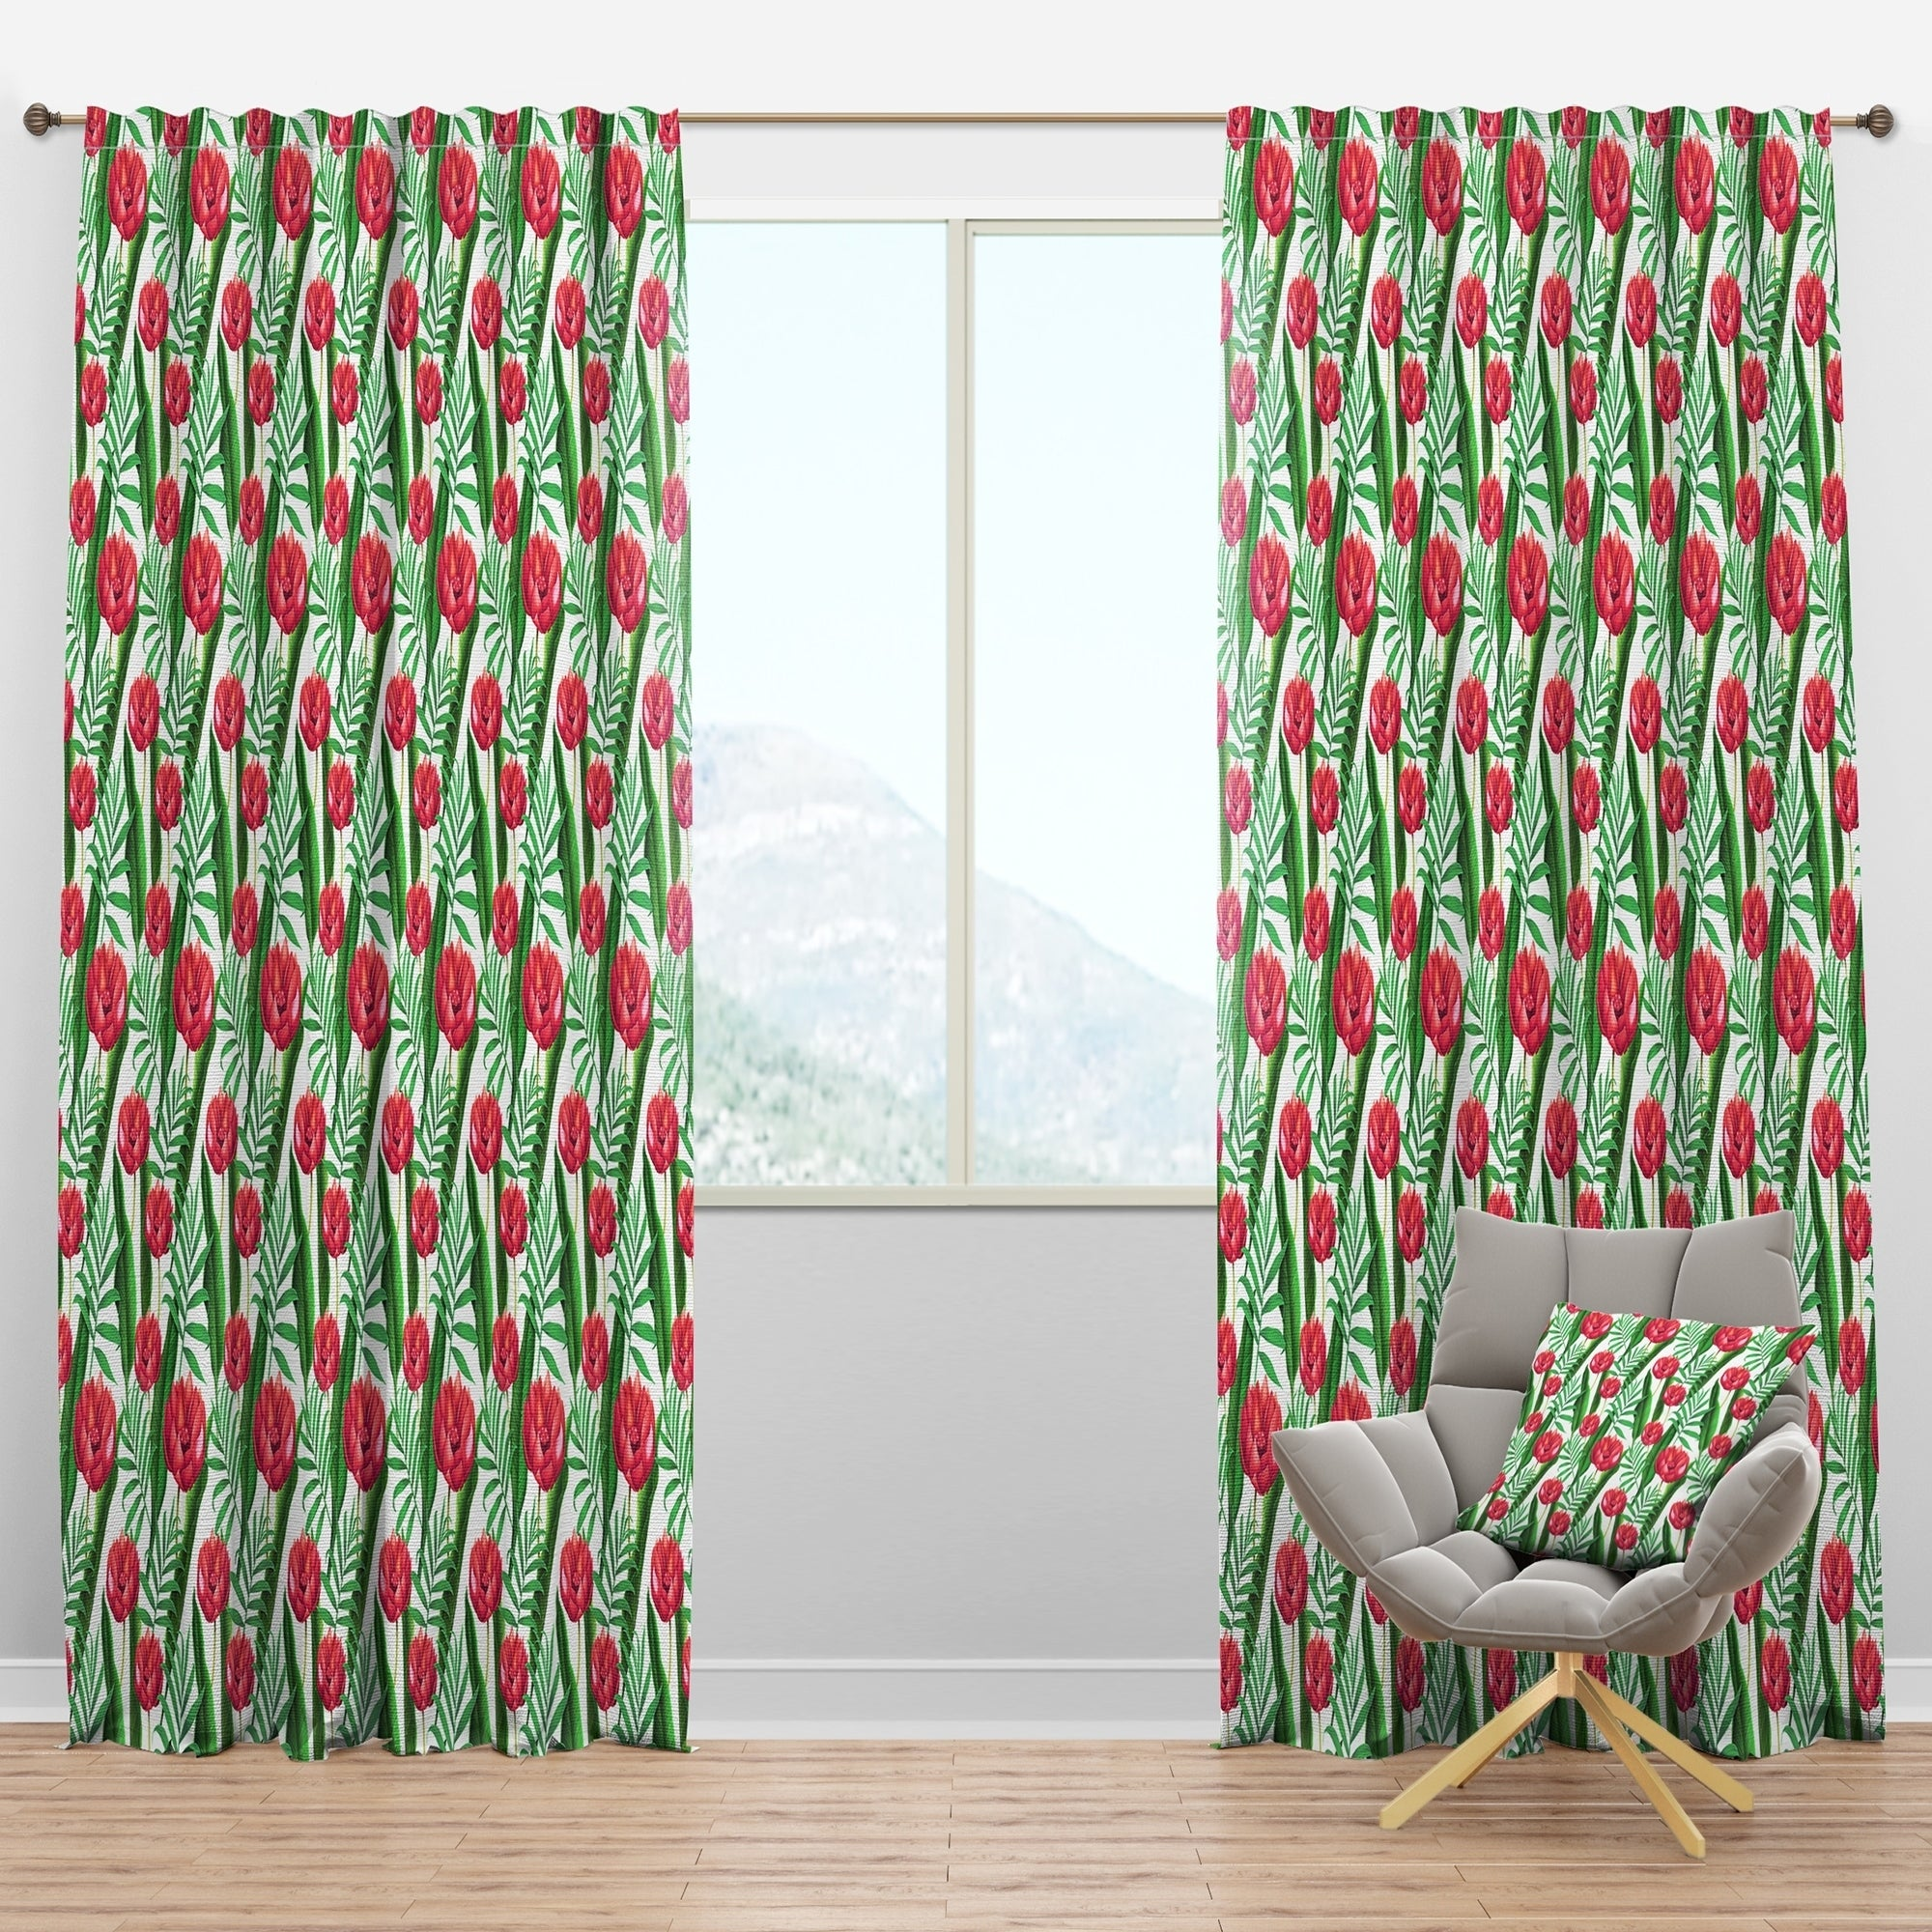 Shop Designart Red Tropical Flowers Floral Curtain Panel Overstock 29625655